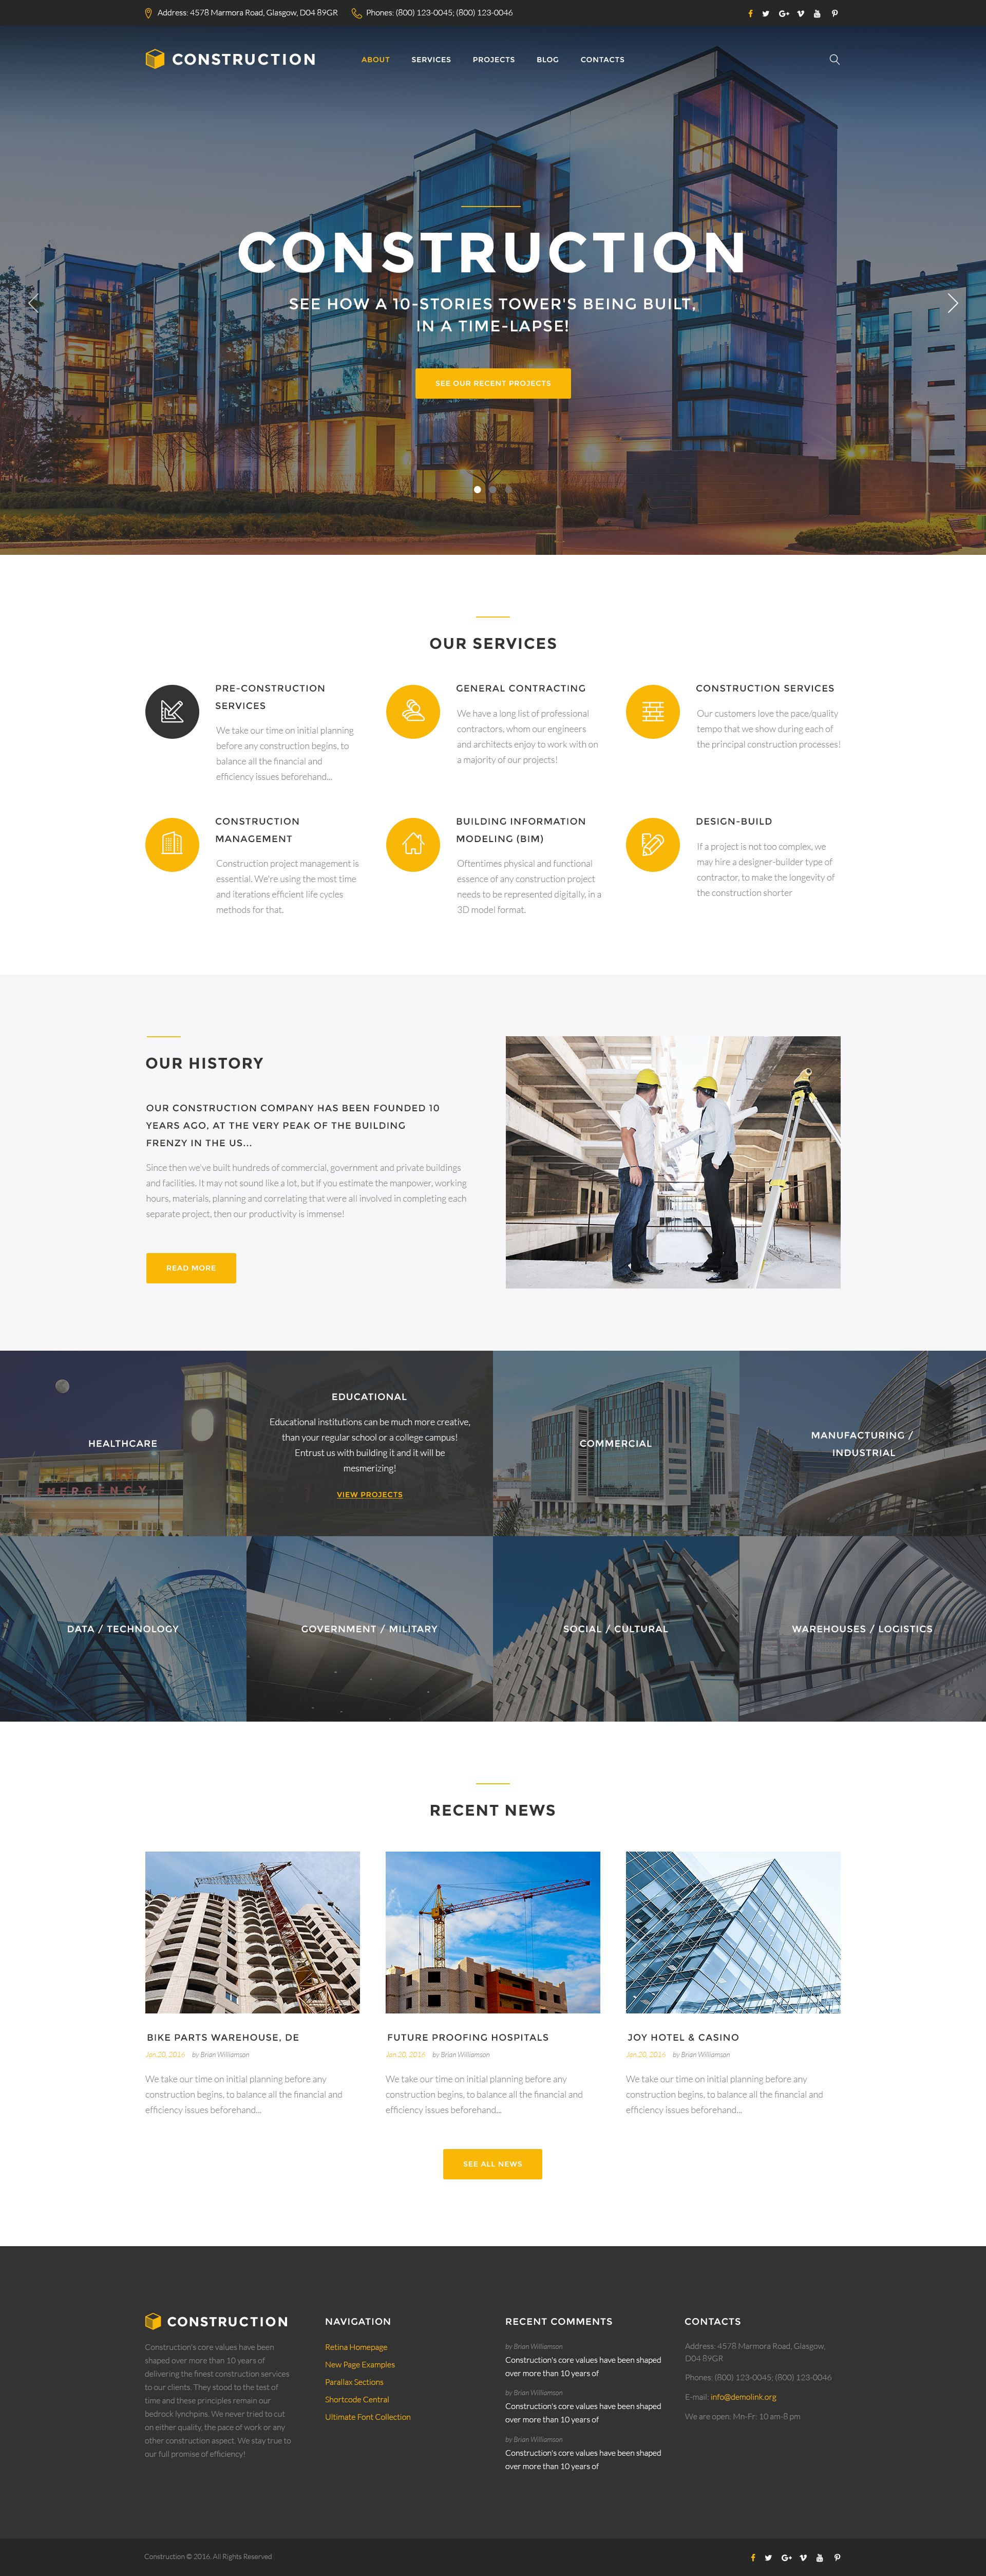 Construction Business Responsive Multipage Website Html Template This Template Is A Chil Construction Website Company Profile Design Website Template Design